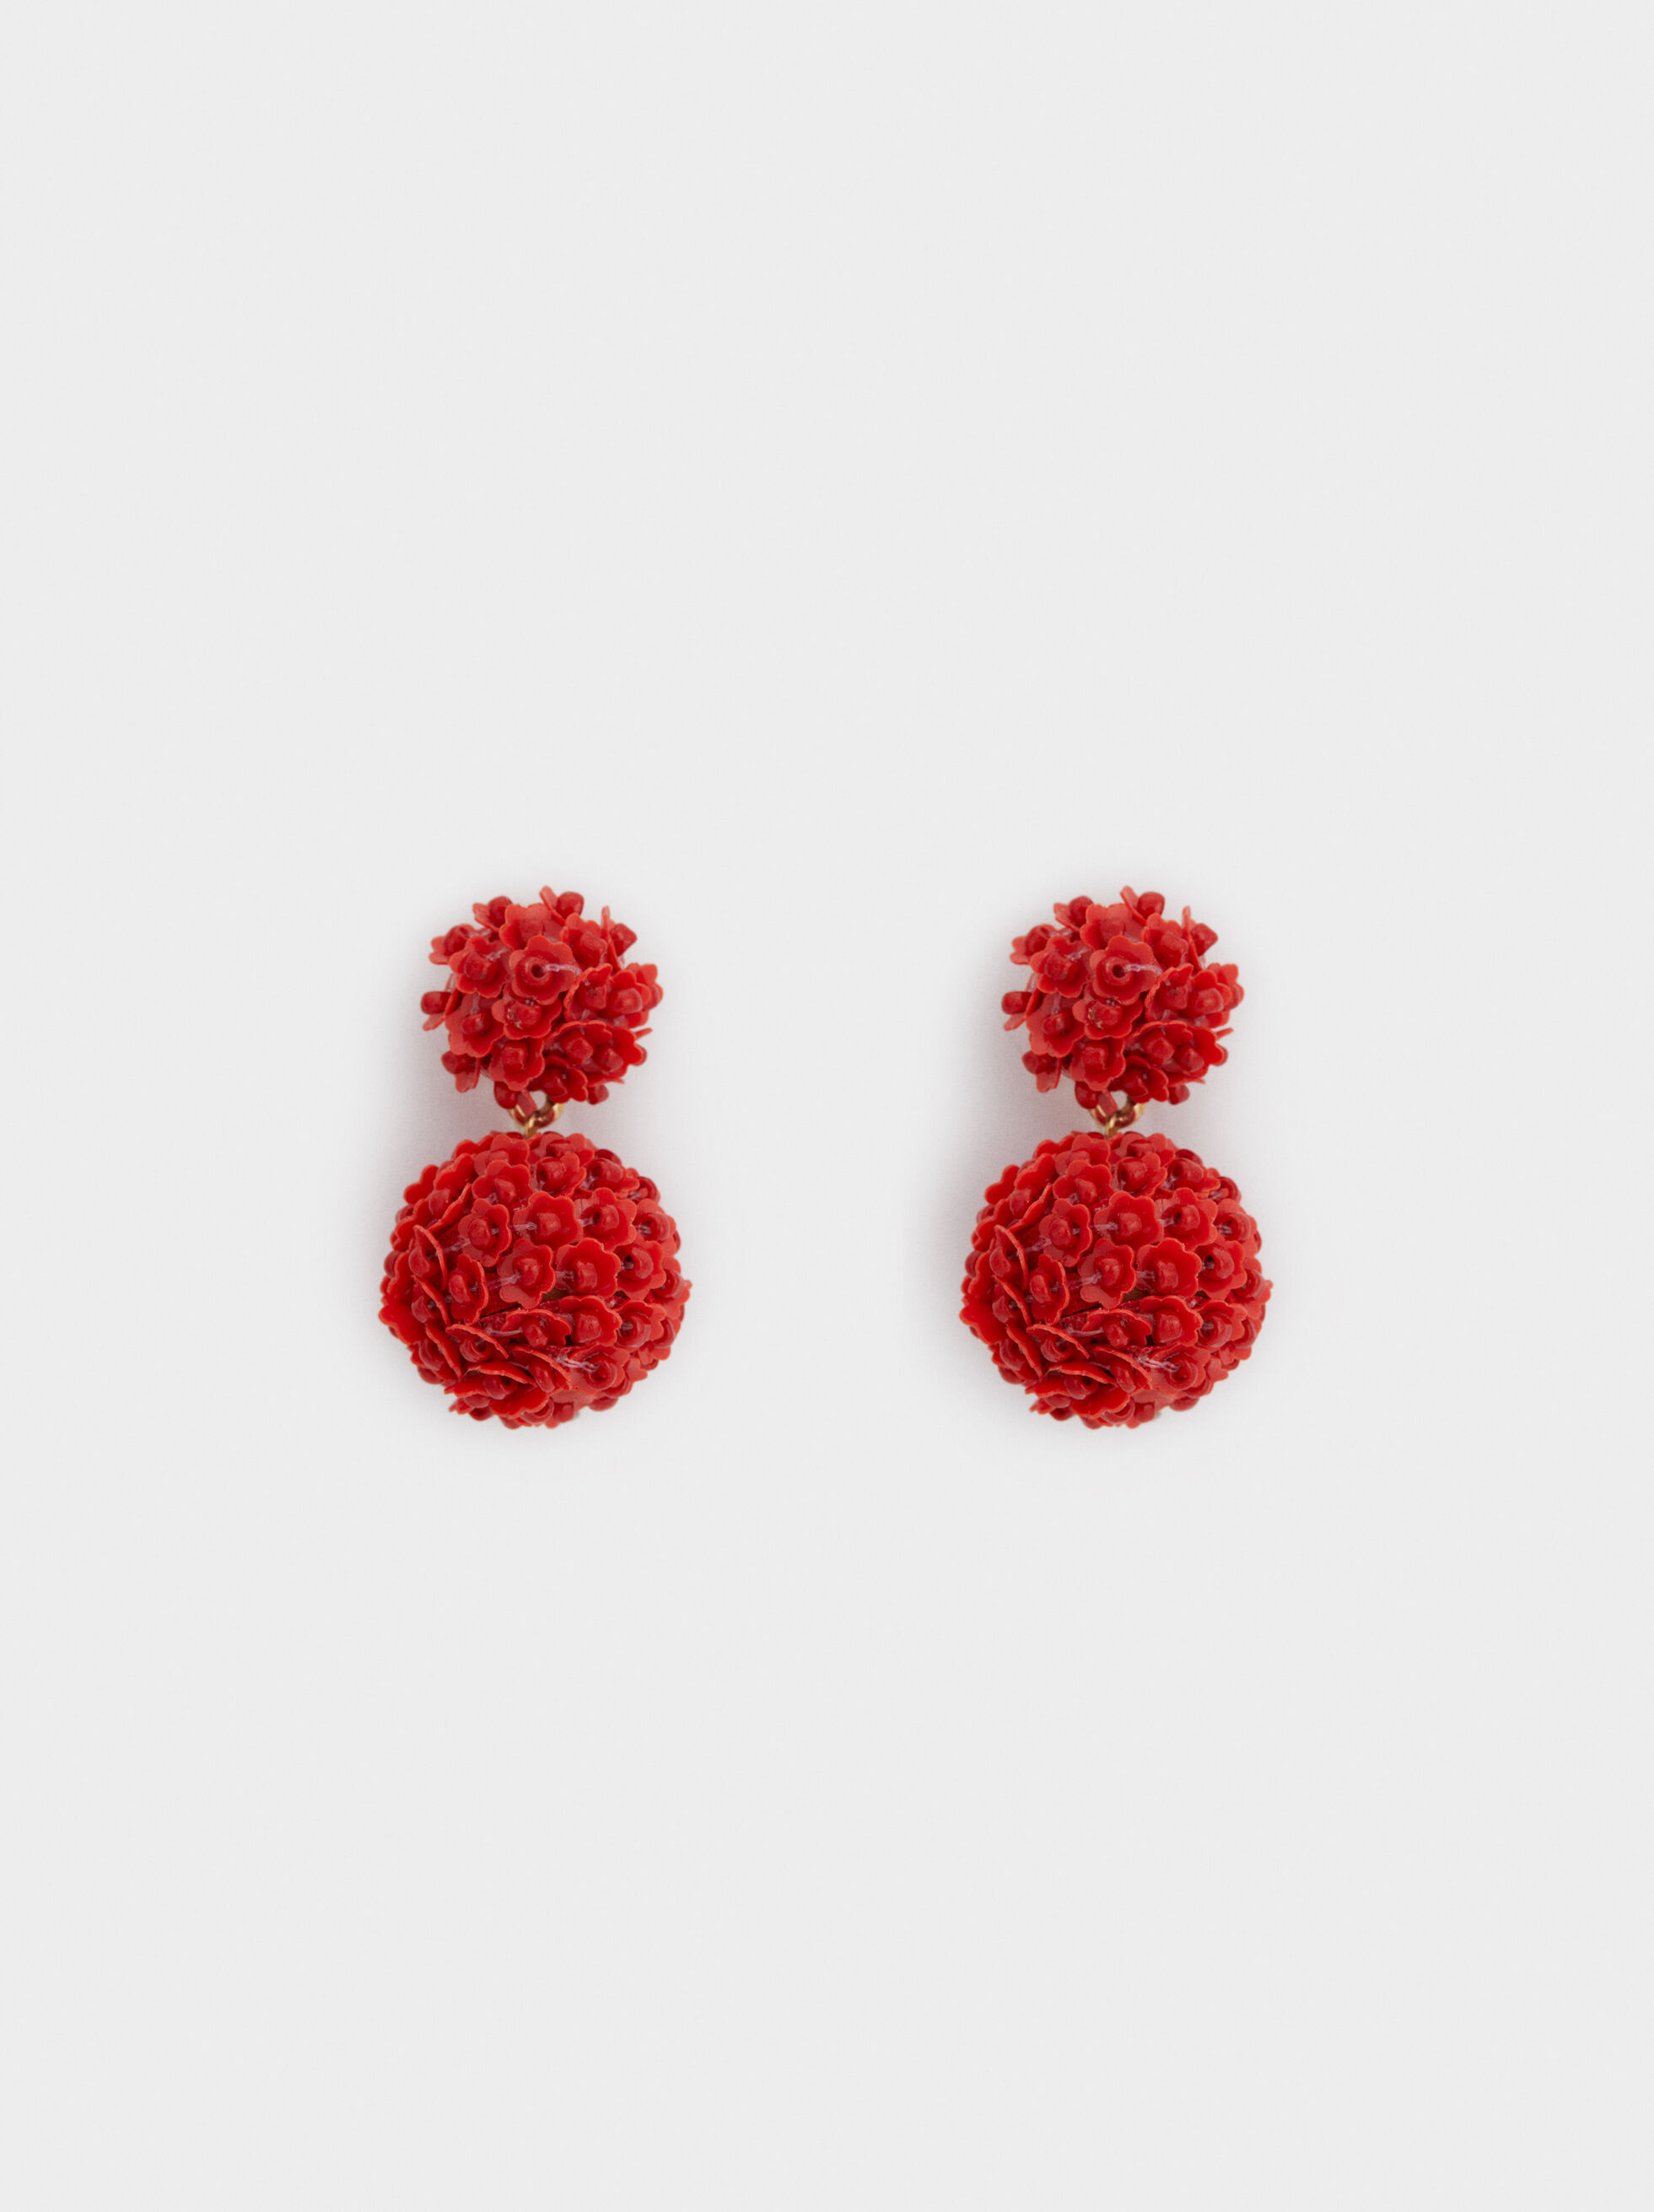 Strawberry Fields Medium Earrings With Floral Prin, , hi-res